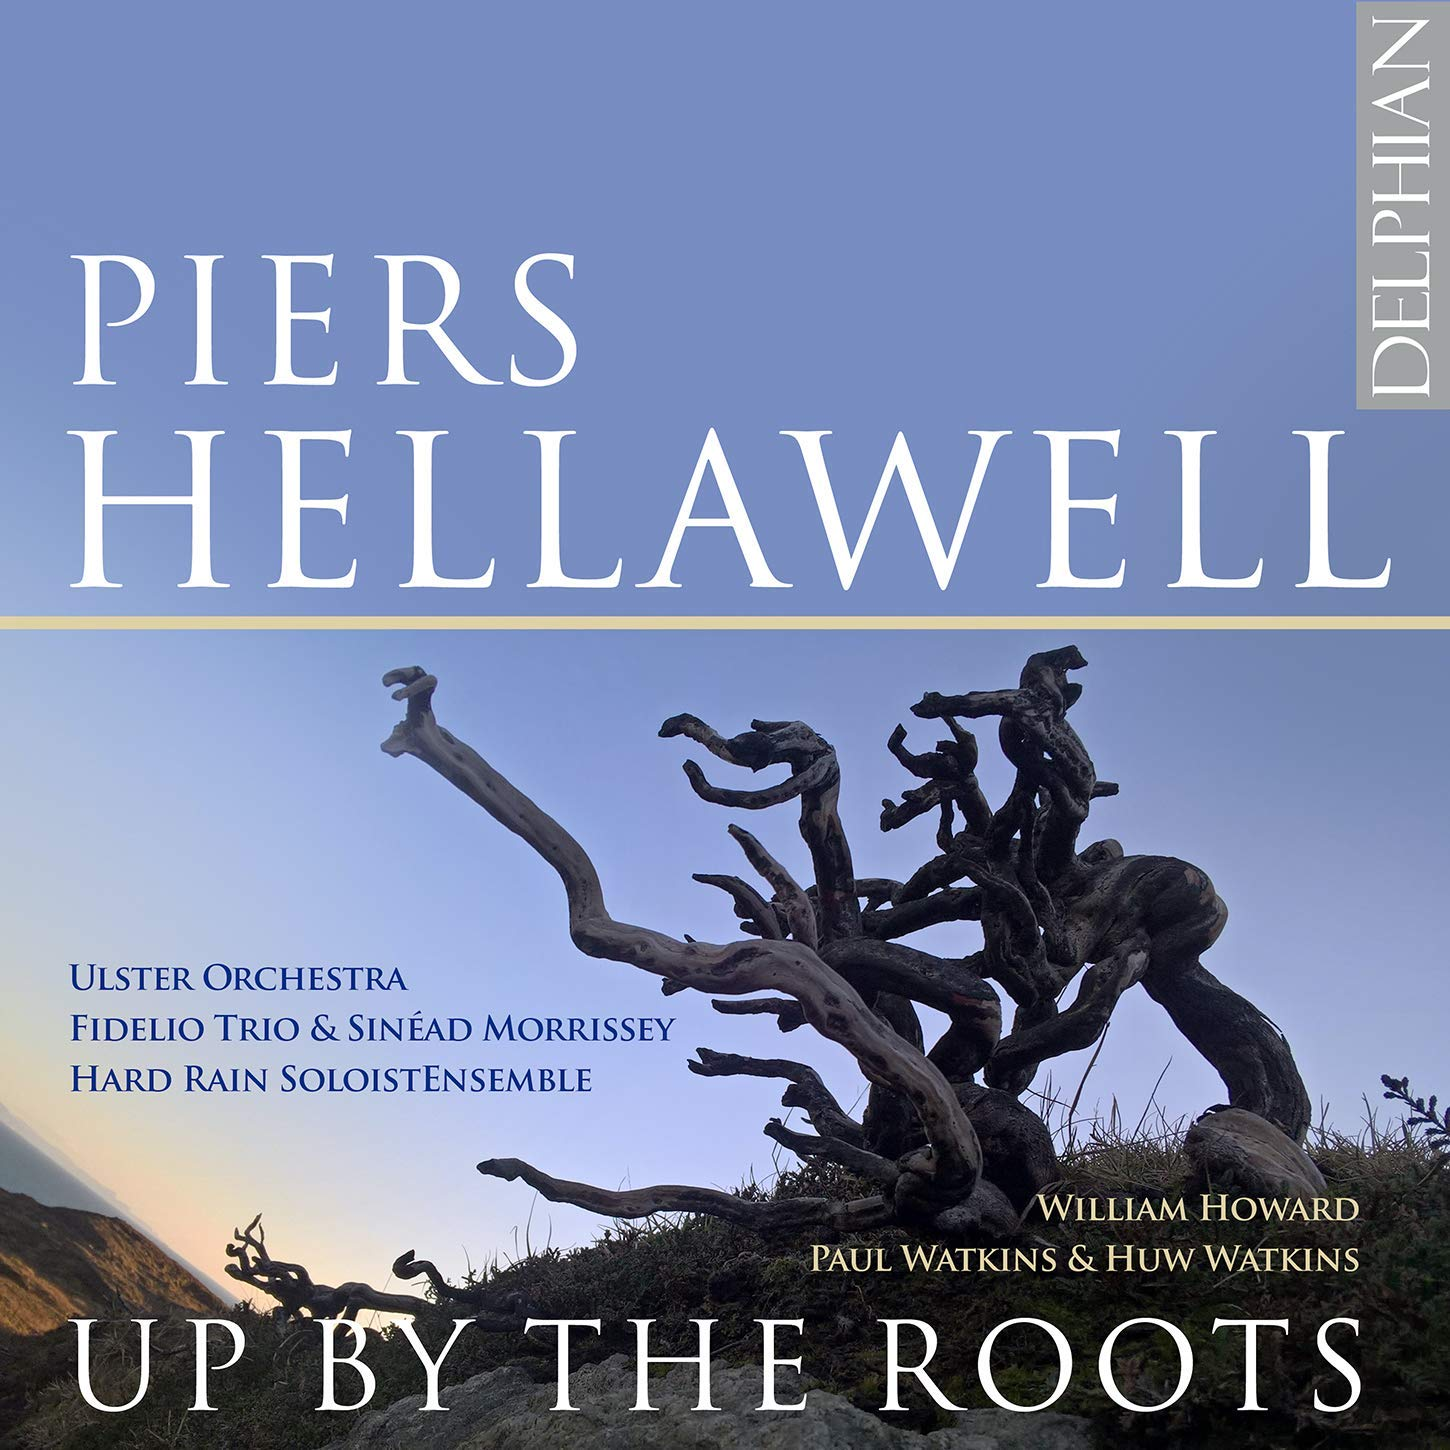 DCD34223. HELLAWELL Up by the Roots